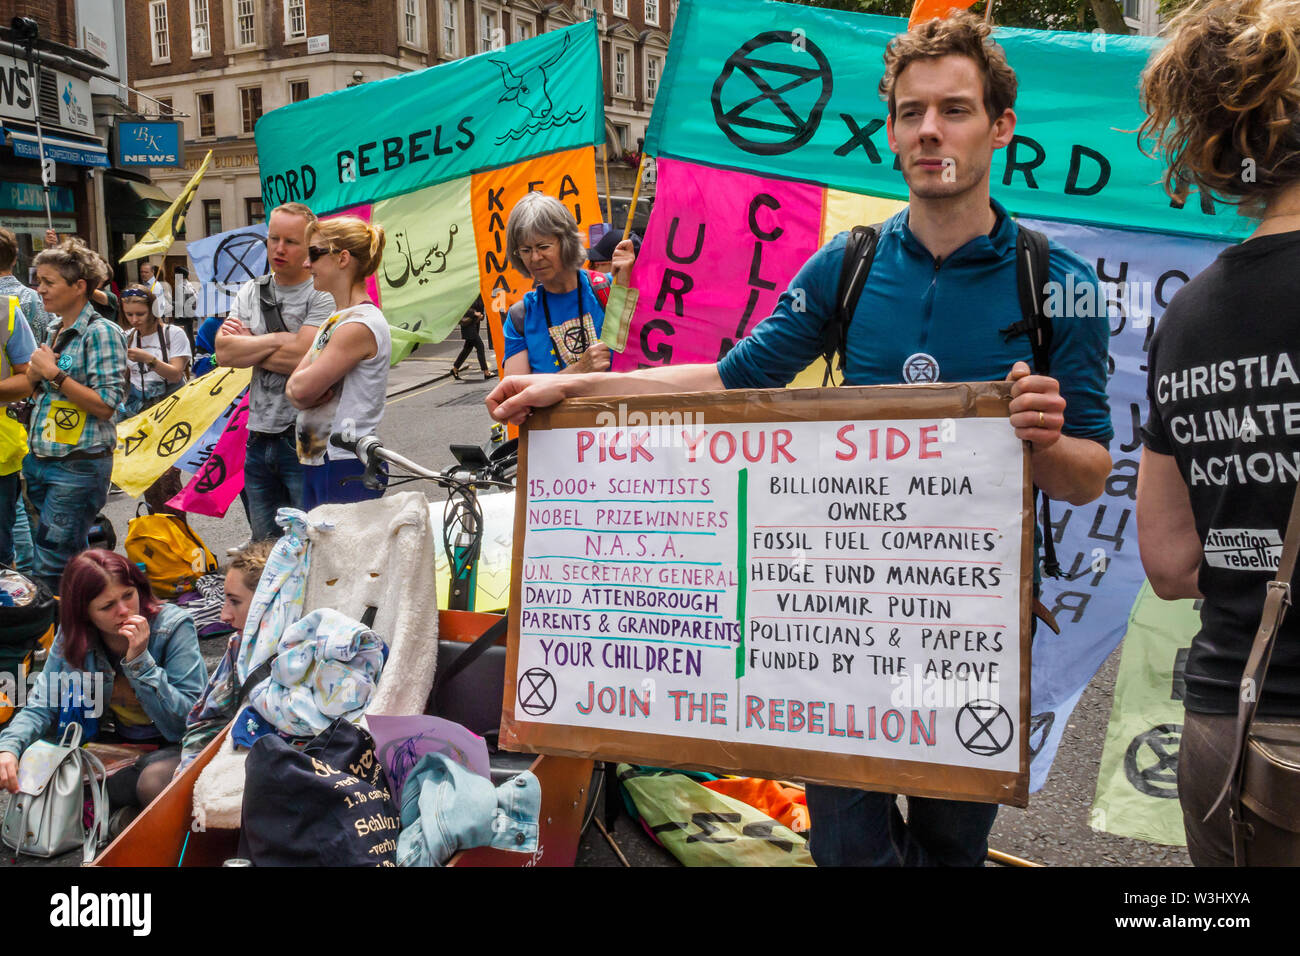 London, UK. 15th July, 2019. A man holds a poster 'Pick Your Side' as Extinction Rebellion begins another series of protests in five major cities against the criminal inaction by the government on climate and ecological collapse. The protesters brought a yacht named after Polly Higgins who fought for years for an Ecocide Law to the Royal Courts of Justice and continued her fight blocking the Strand all day with performances, discussions, speeches, music and ceremonies in front of the yacht. Credit: Peter Marshall/Alamy Live News - Stock Image